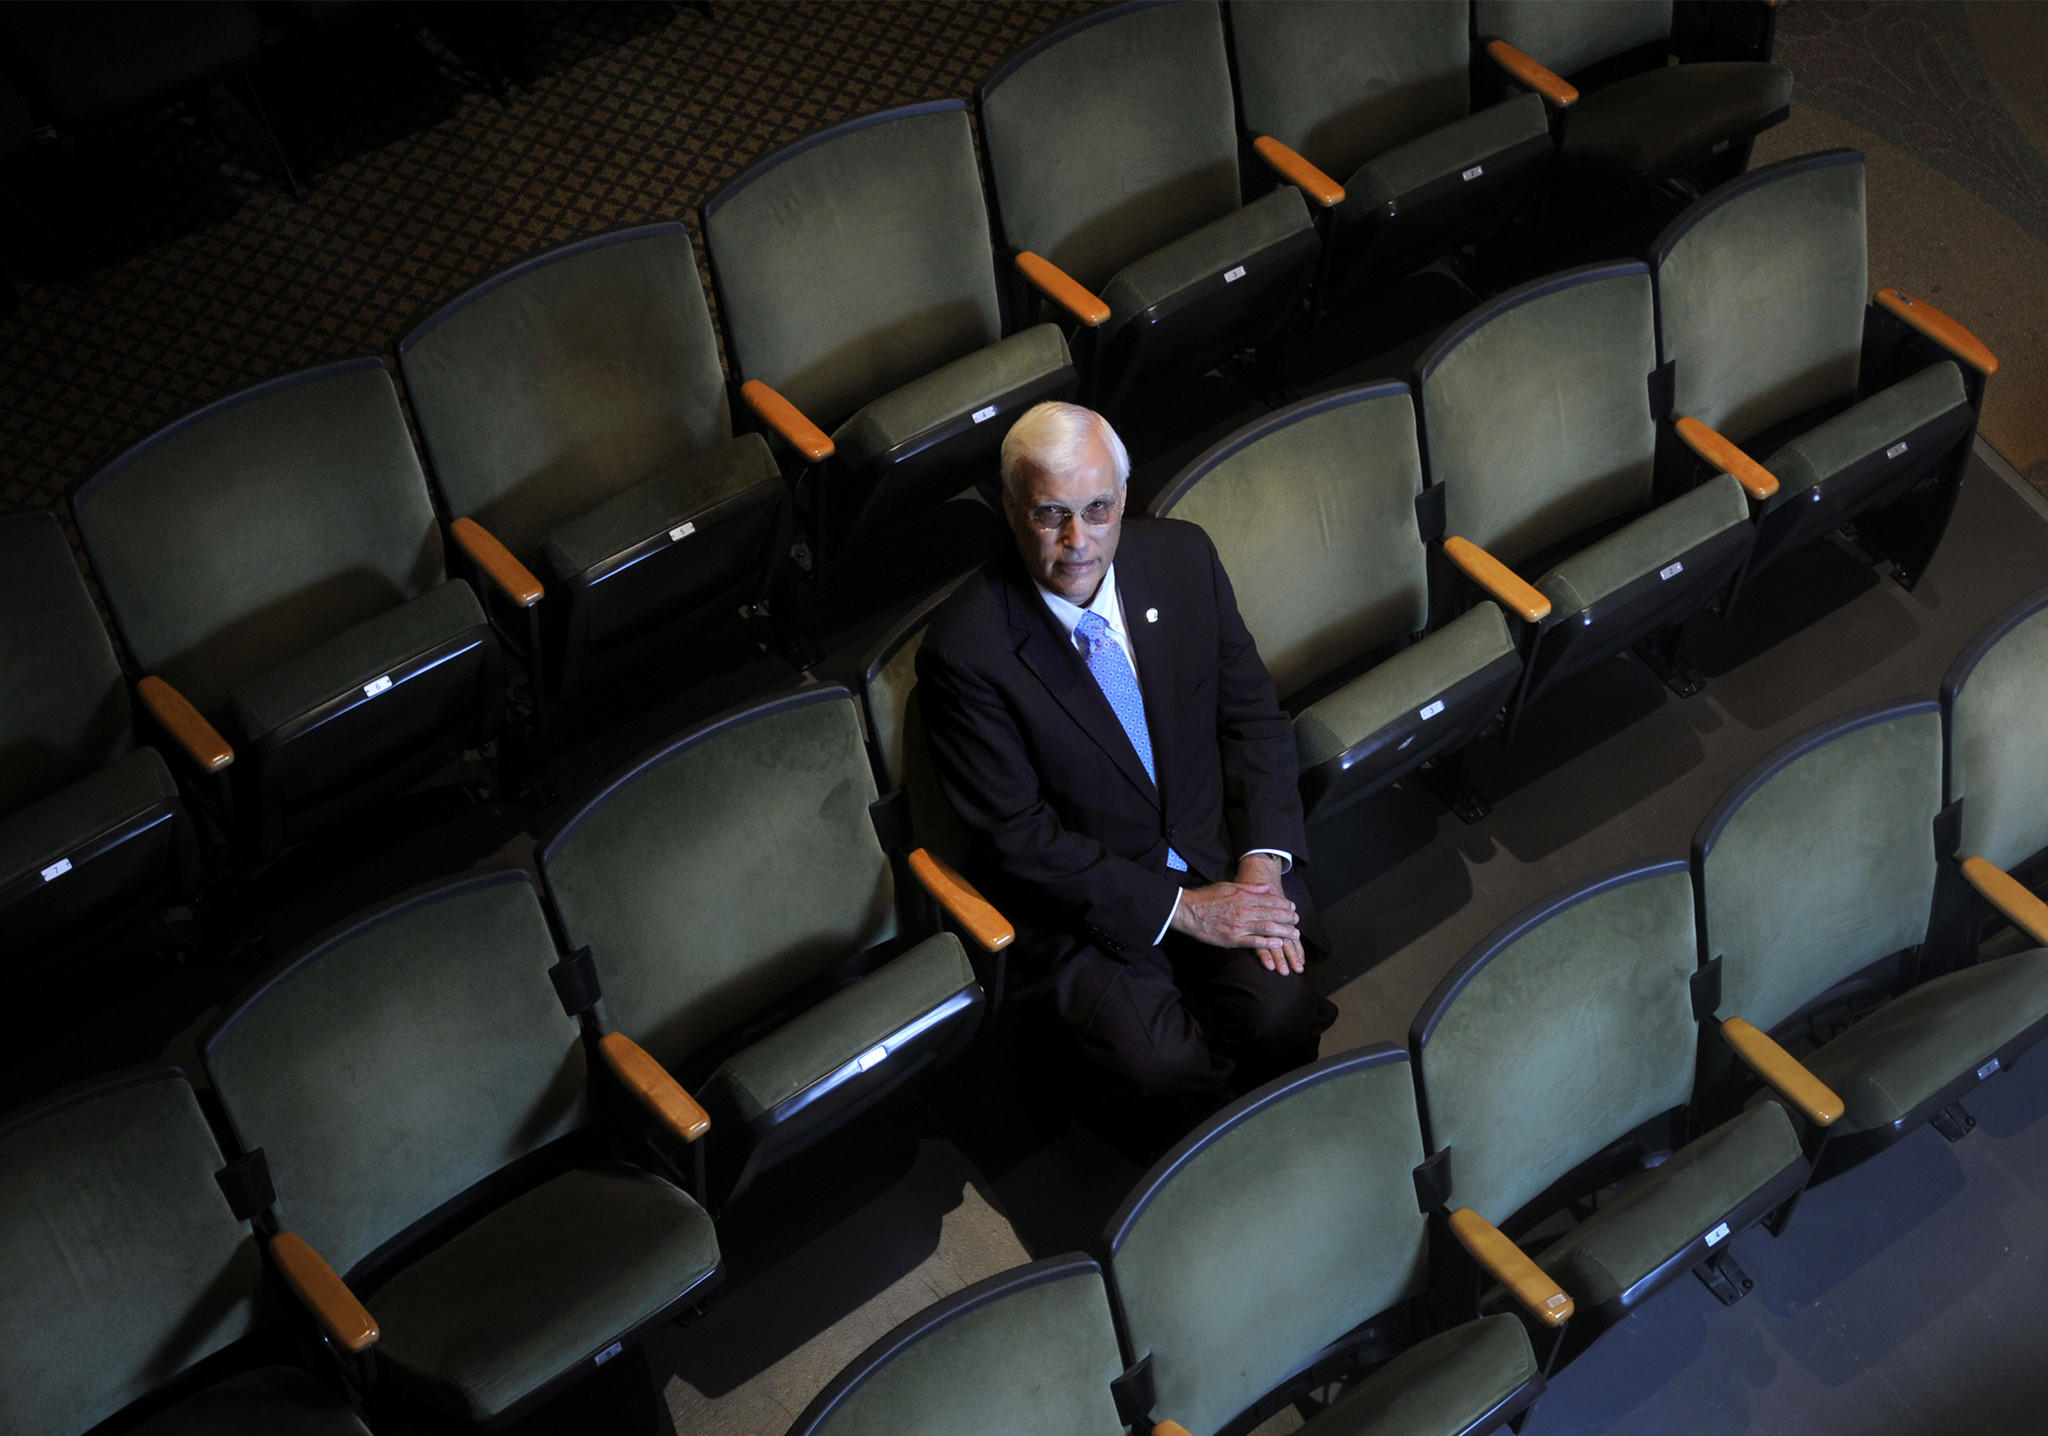 Former UConn dean, David G. Woods, poses for a portrait at Jorgensen Center for the Performing Arts in Storrs.